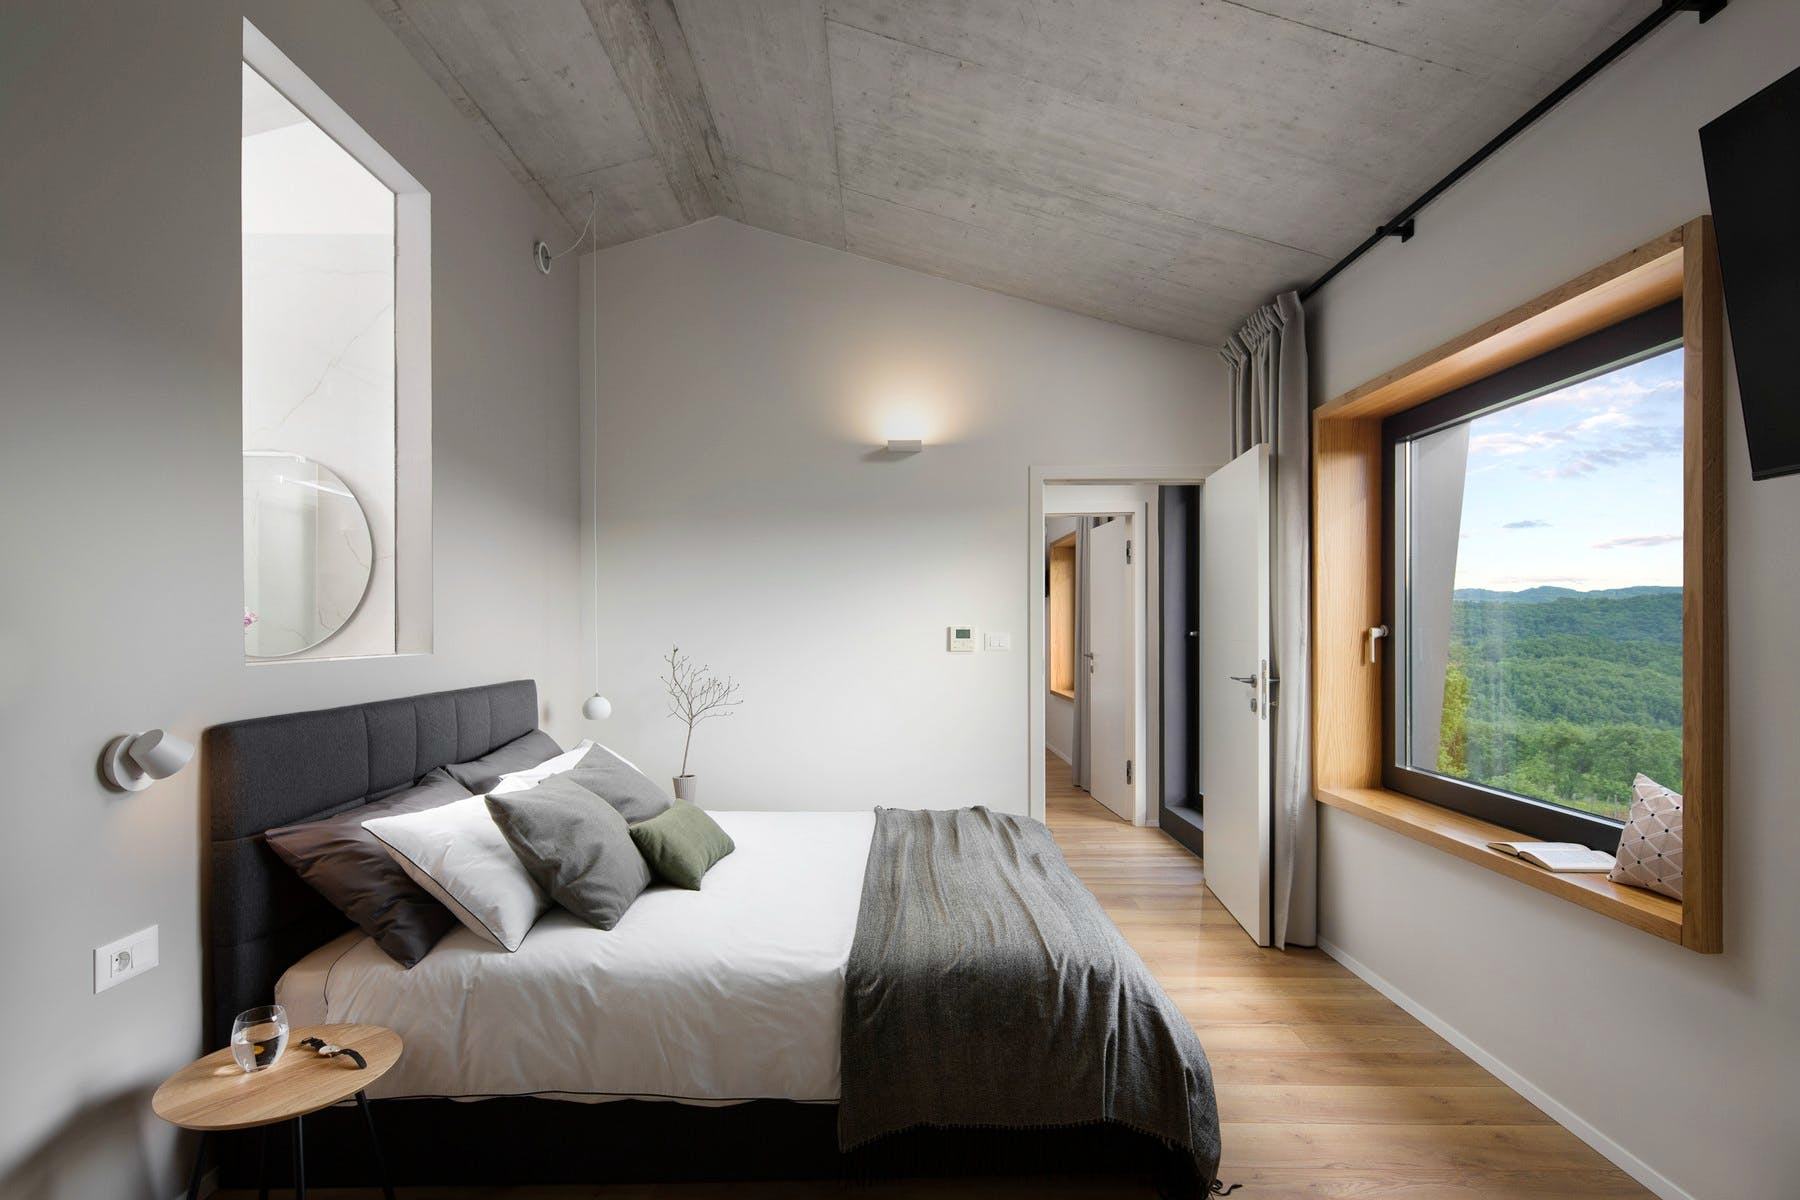 Modern ensuite bedroom with stunning view